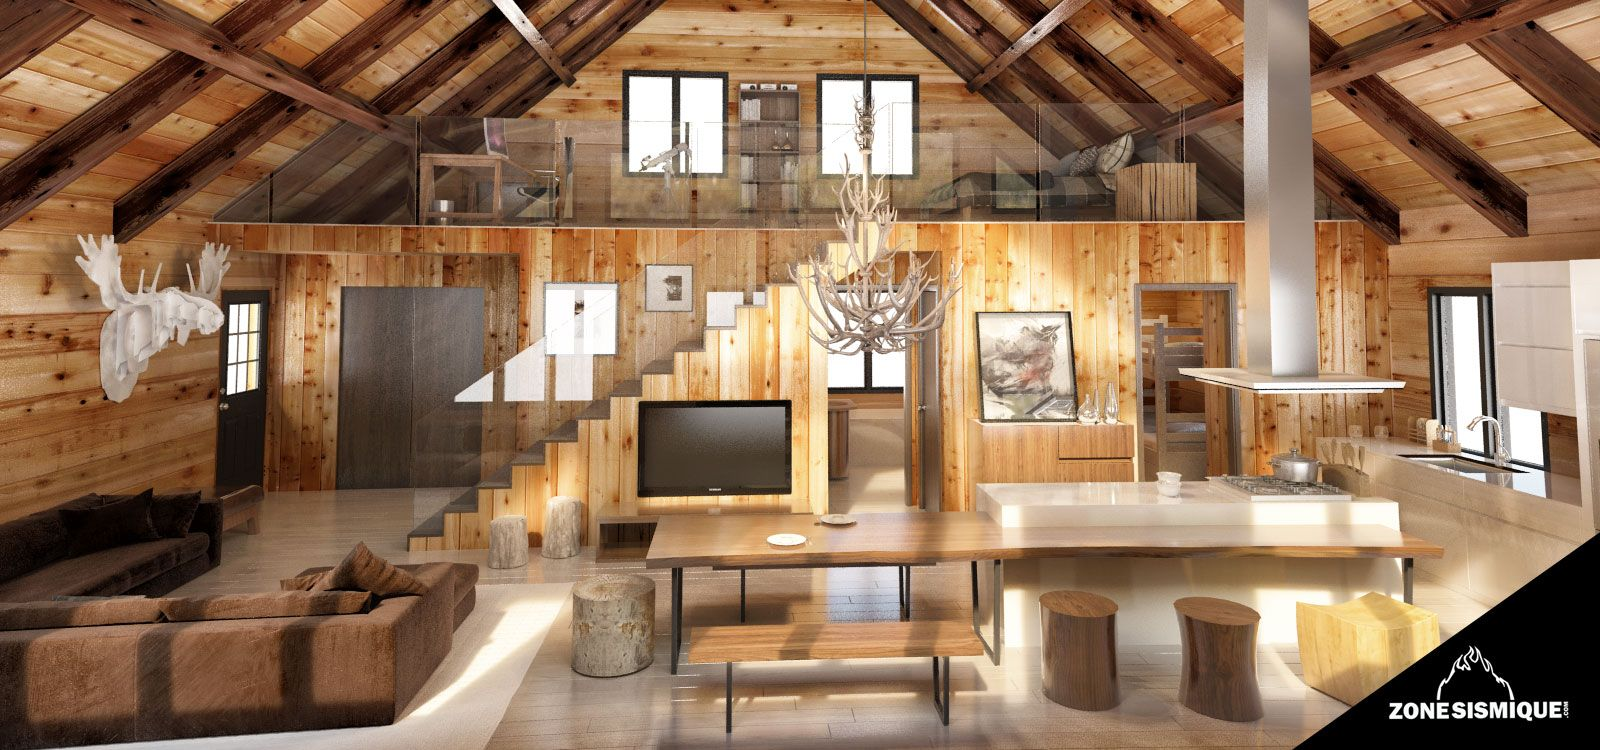 Cuisine Chalet Bois Pin By Georgia Mou On Rustic Pinterest House Log Homes And Cabin